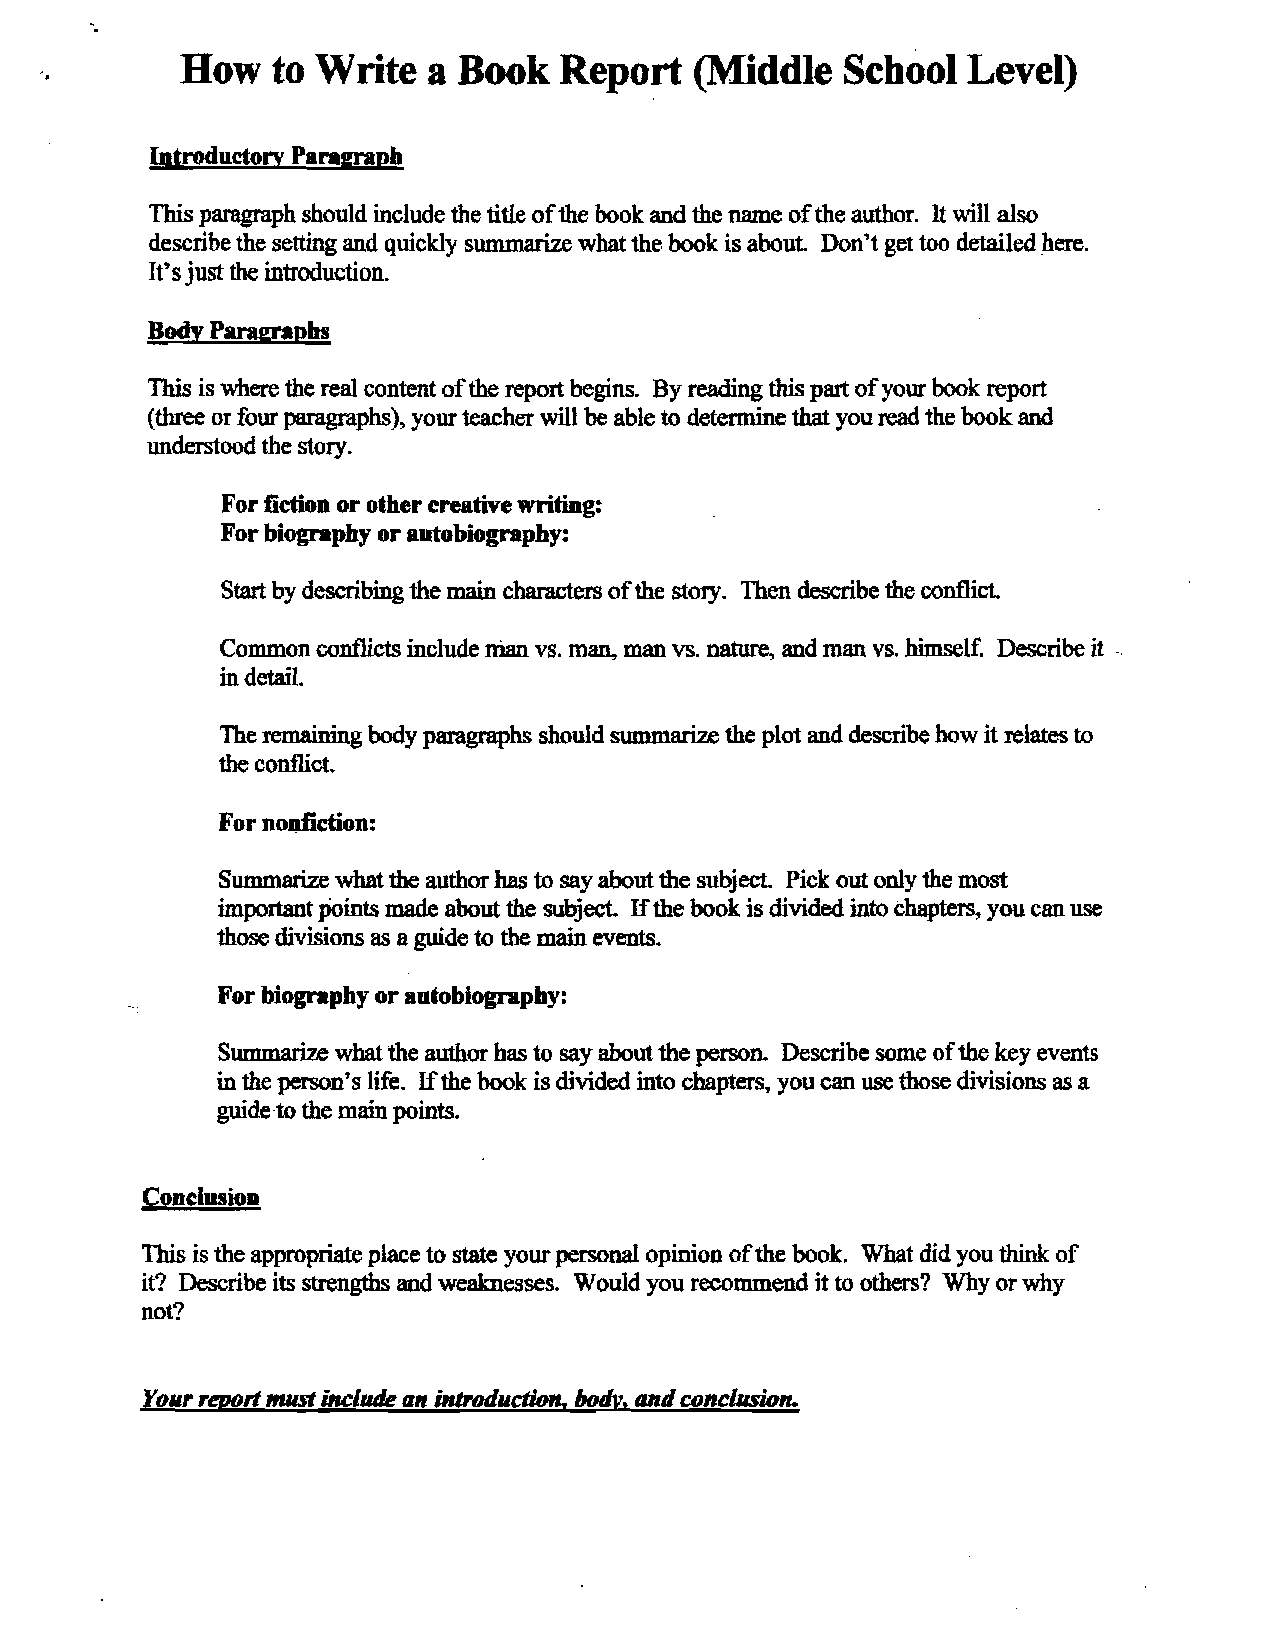 How To Write A Book Report For High School The